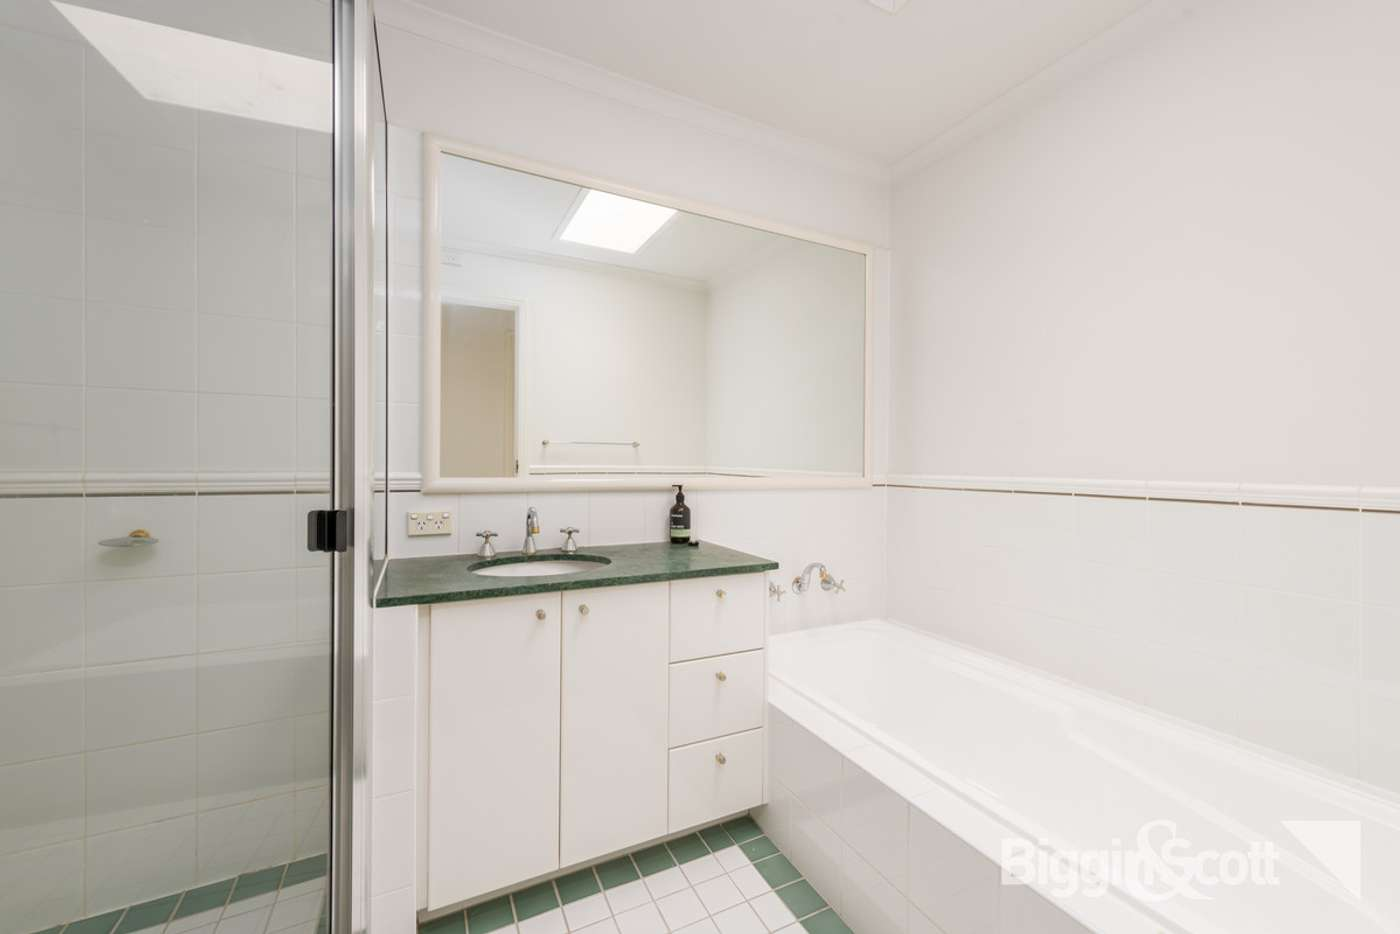 Fifth view of Homely house listing, 10 Swallow Street, Port Melbourne VIC 3207